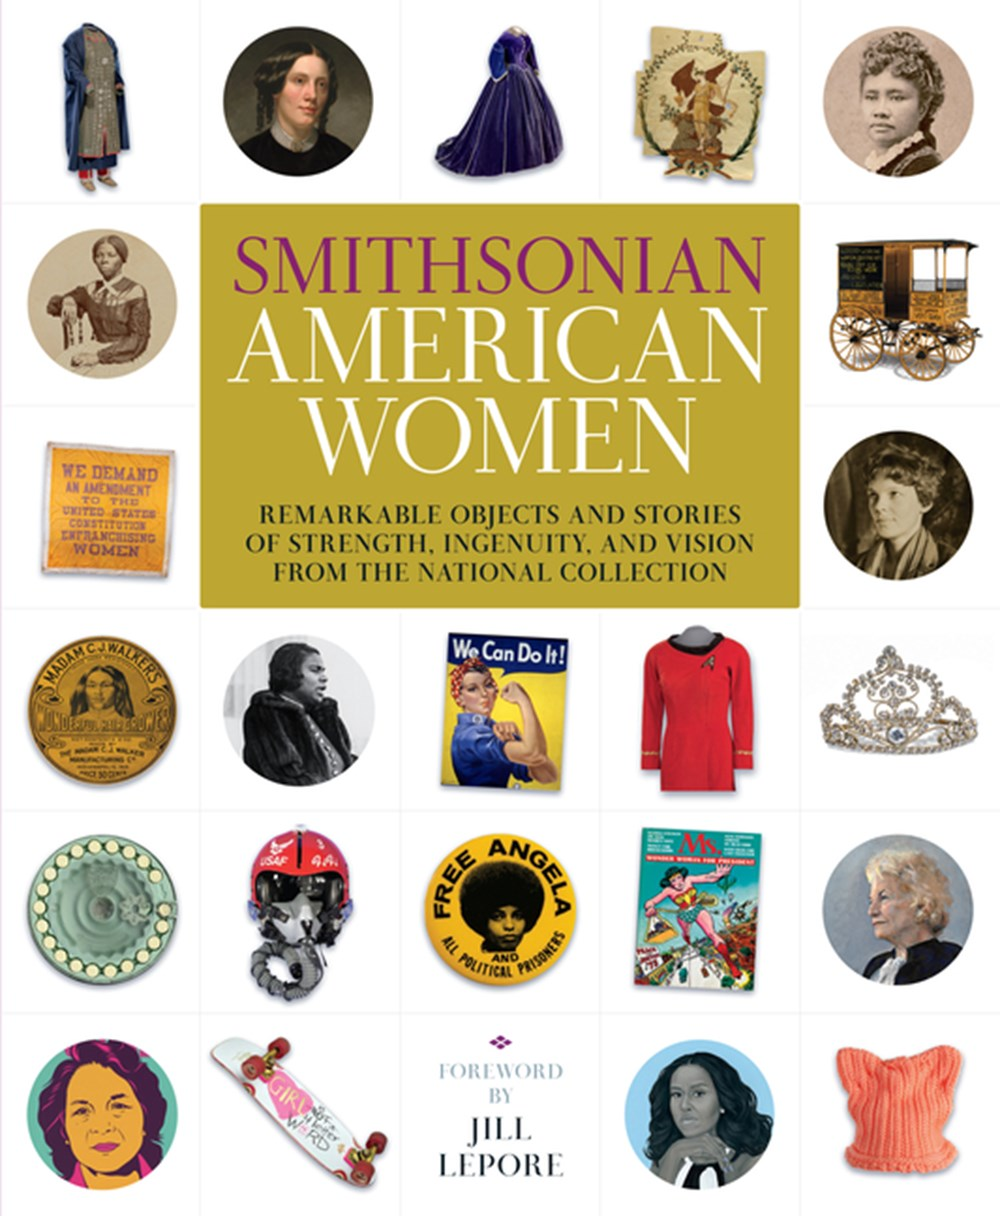 Smithsonian American Women Remarkable Objects and Stories of Strength, Ingenuity, and Vision from th